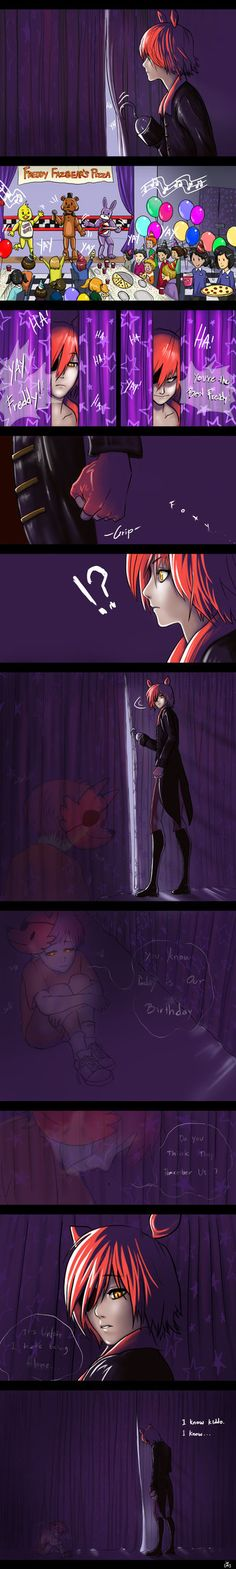 So sad *hugs Foxy* Happy birthday *give him a present of a new hook and eye patch*